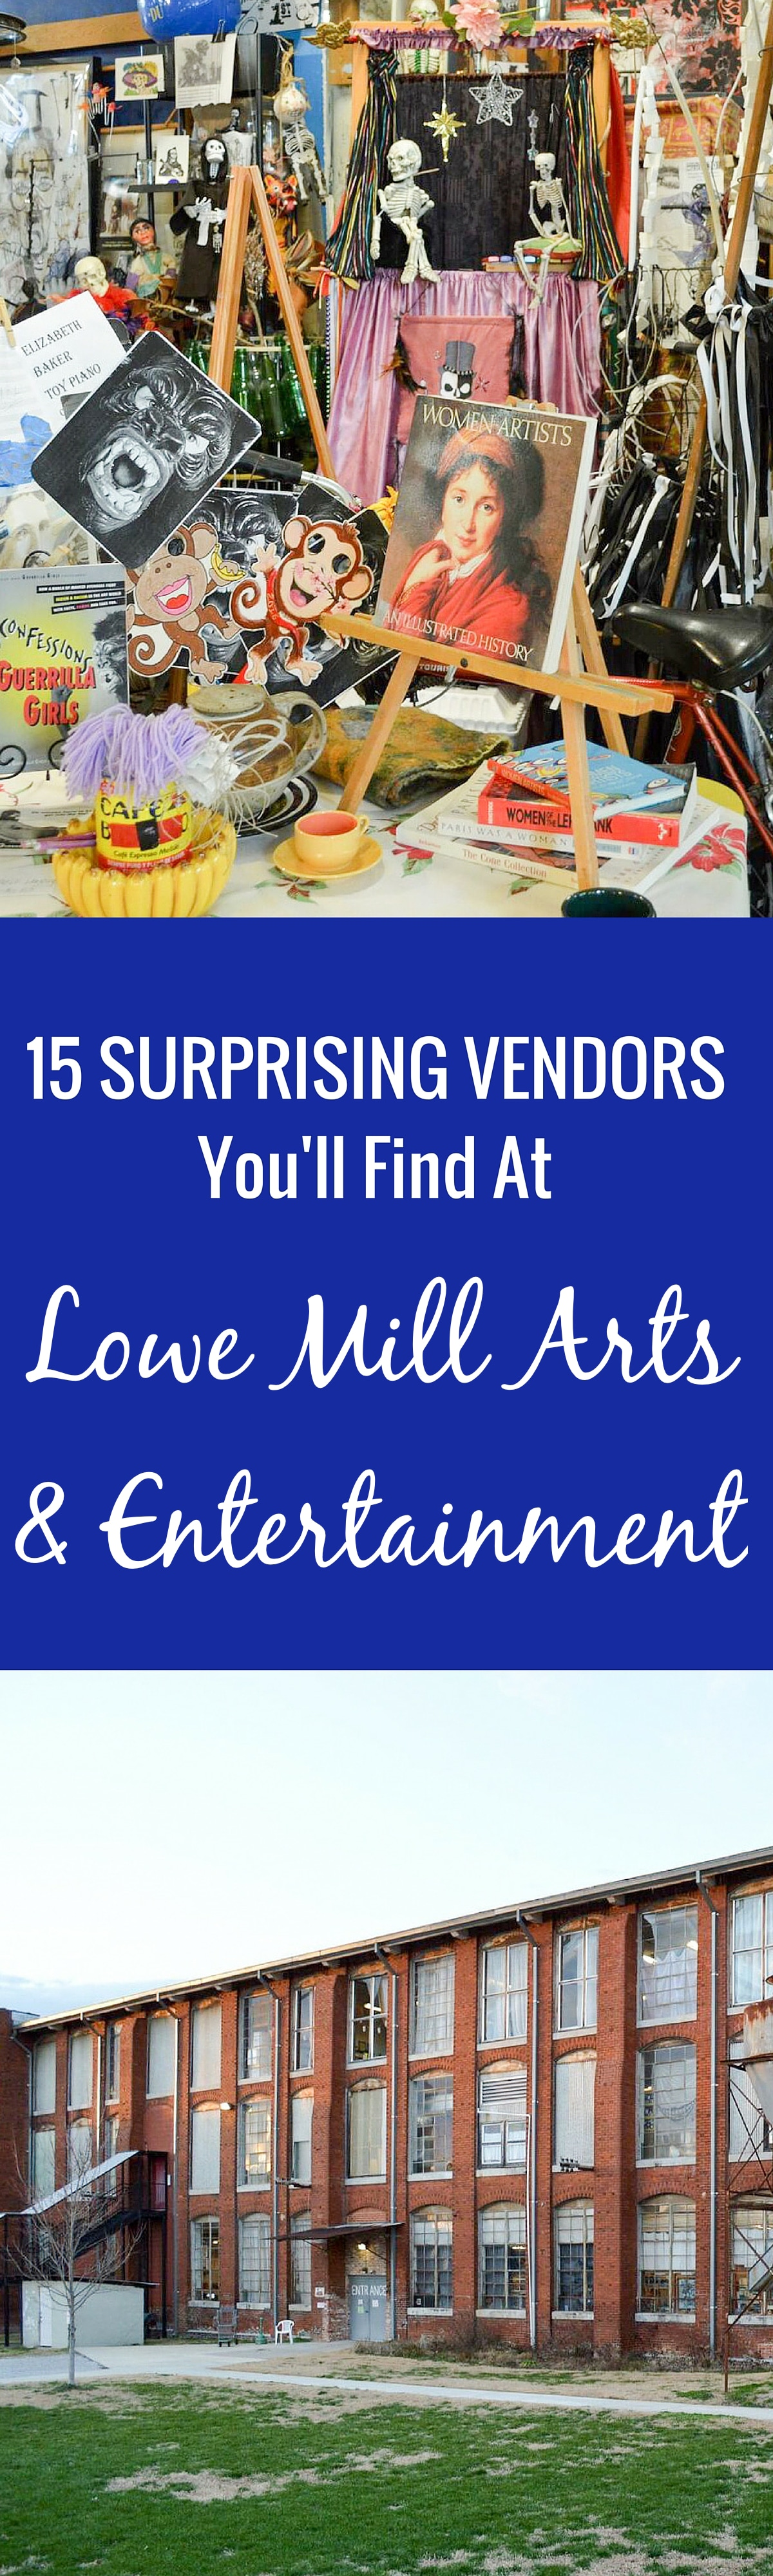 15 Surprising Vendors You'll Find at Lowe Mill Arts & Entertainment. A list of some of the unique and fun vendors at Lowe Mill Arts & Entertainment in Huntsville, Alabama. You'll be amazed at what you find in the country's largest private artist cooperative.